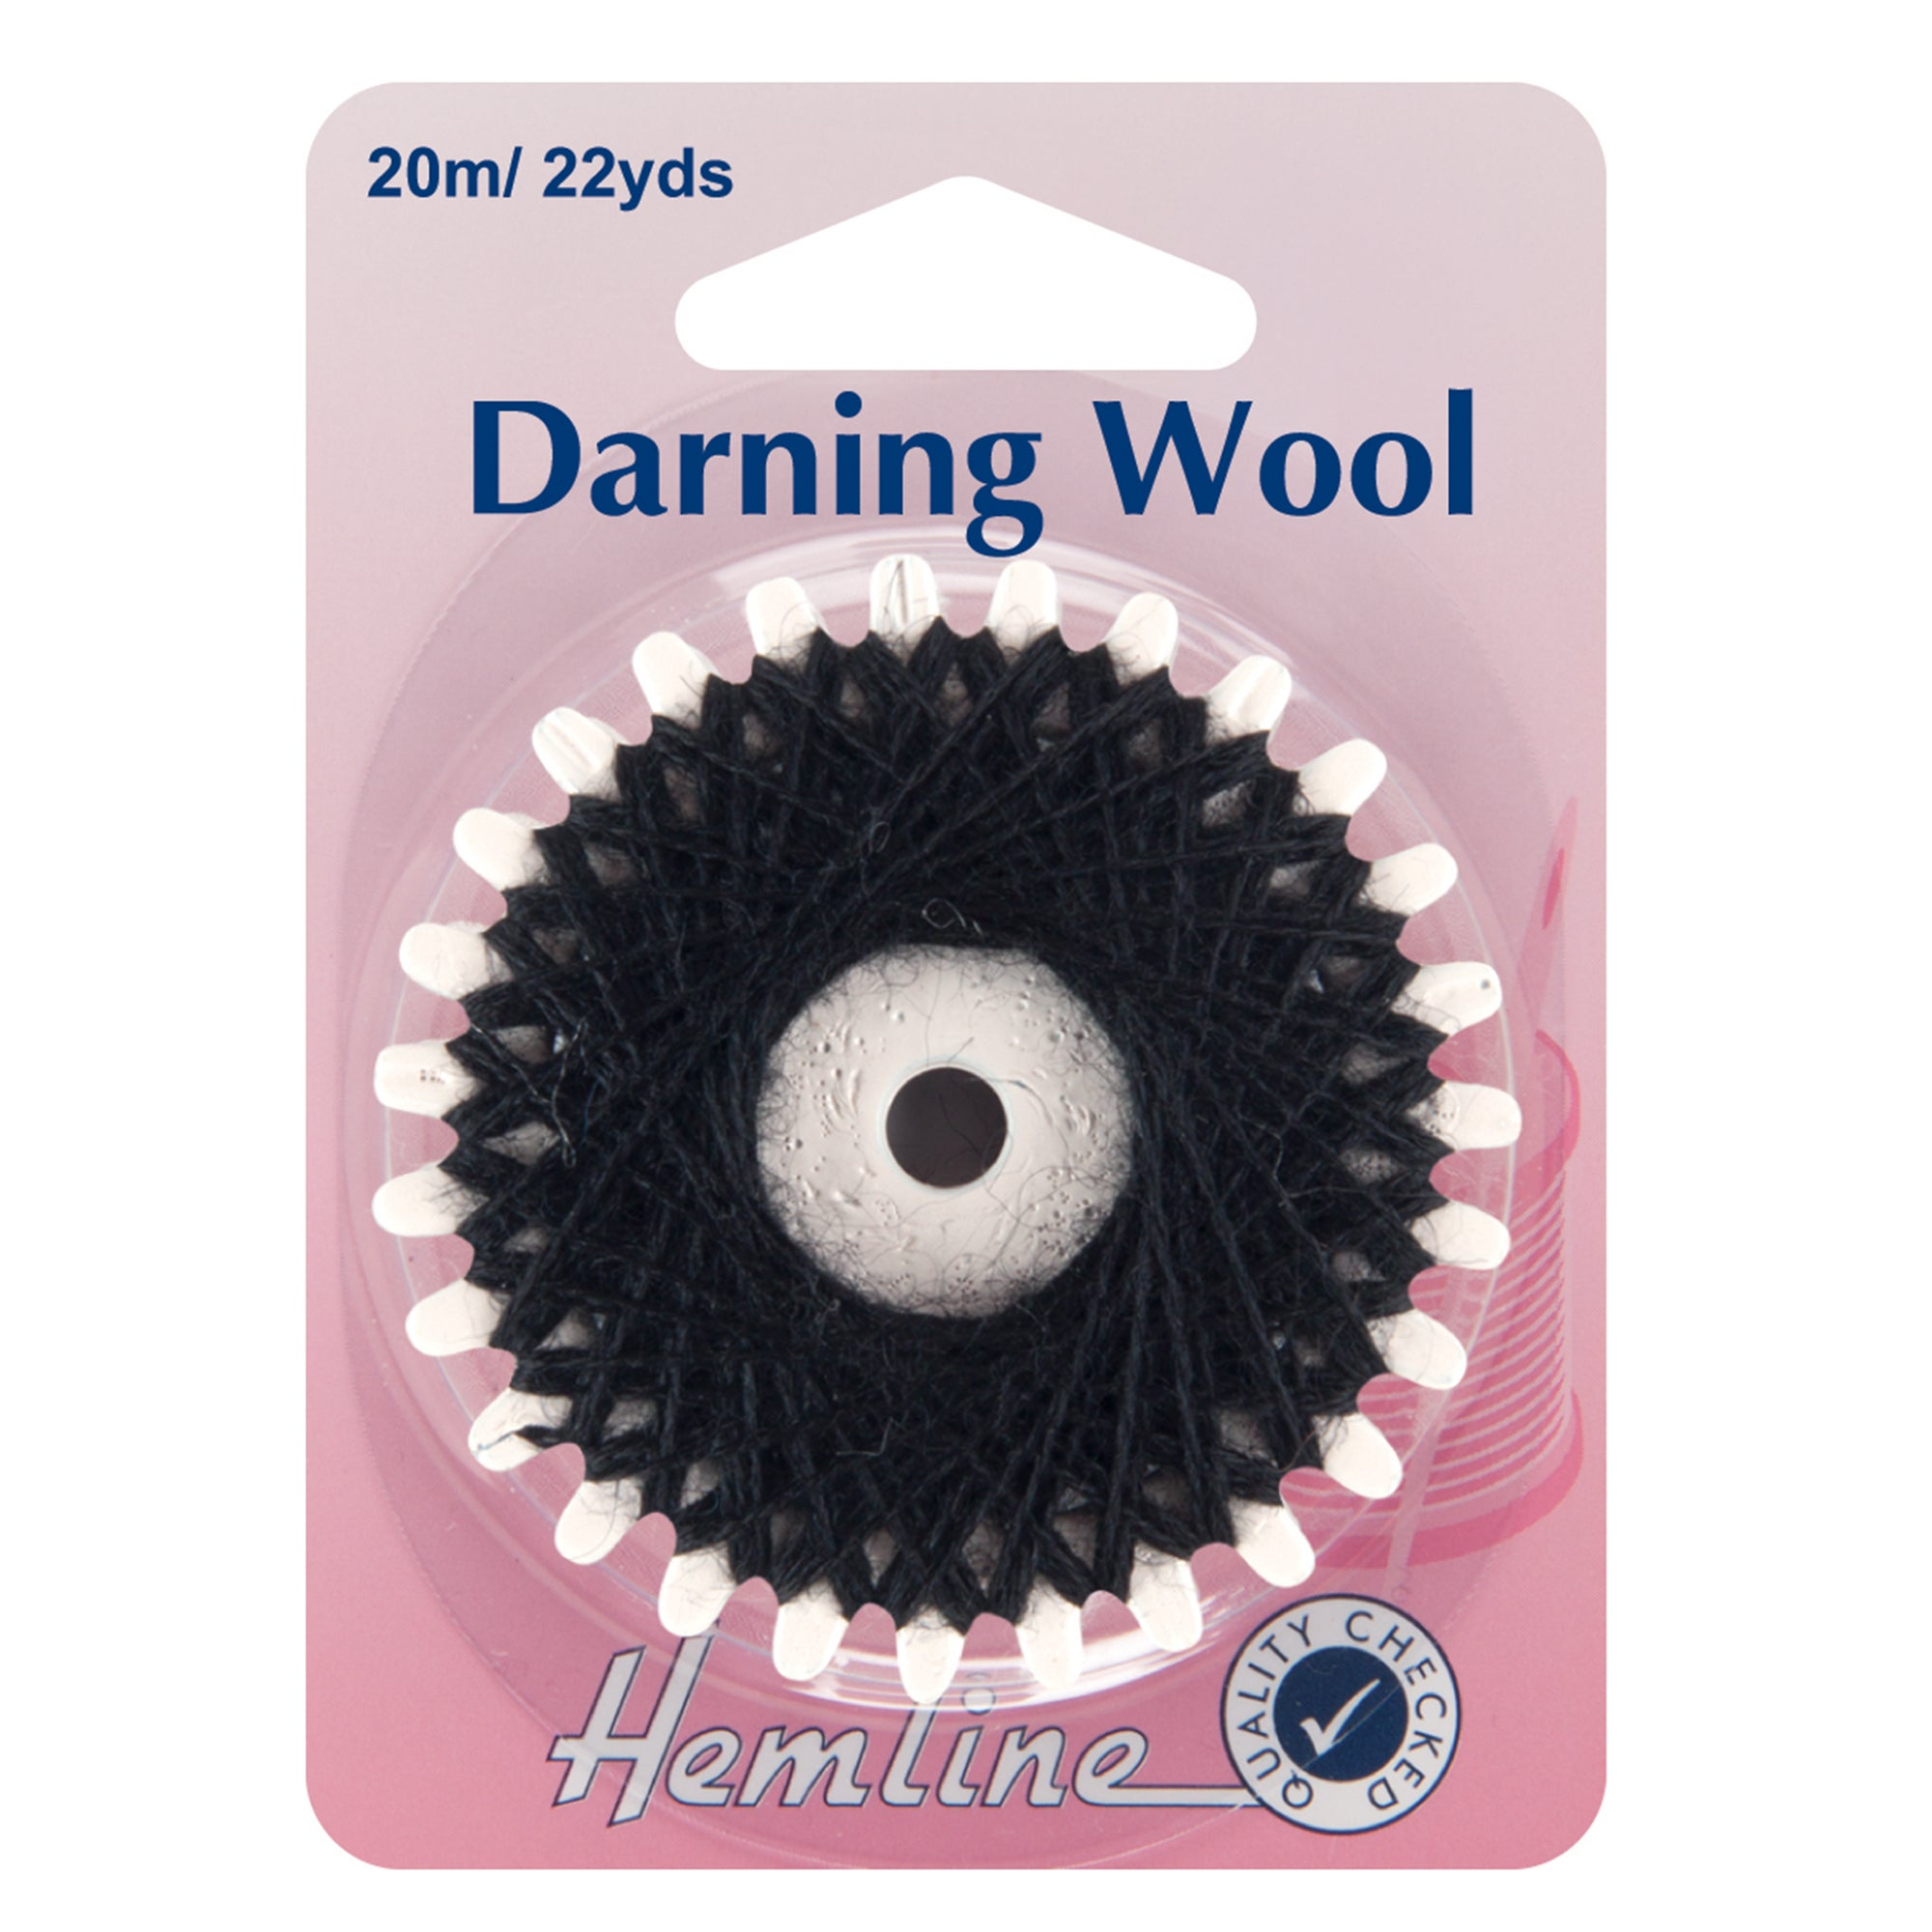 Hemline Black Darning Wool